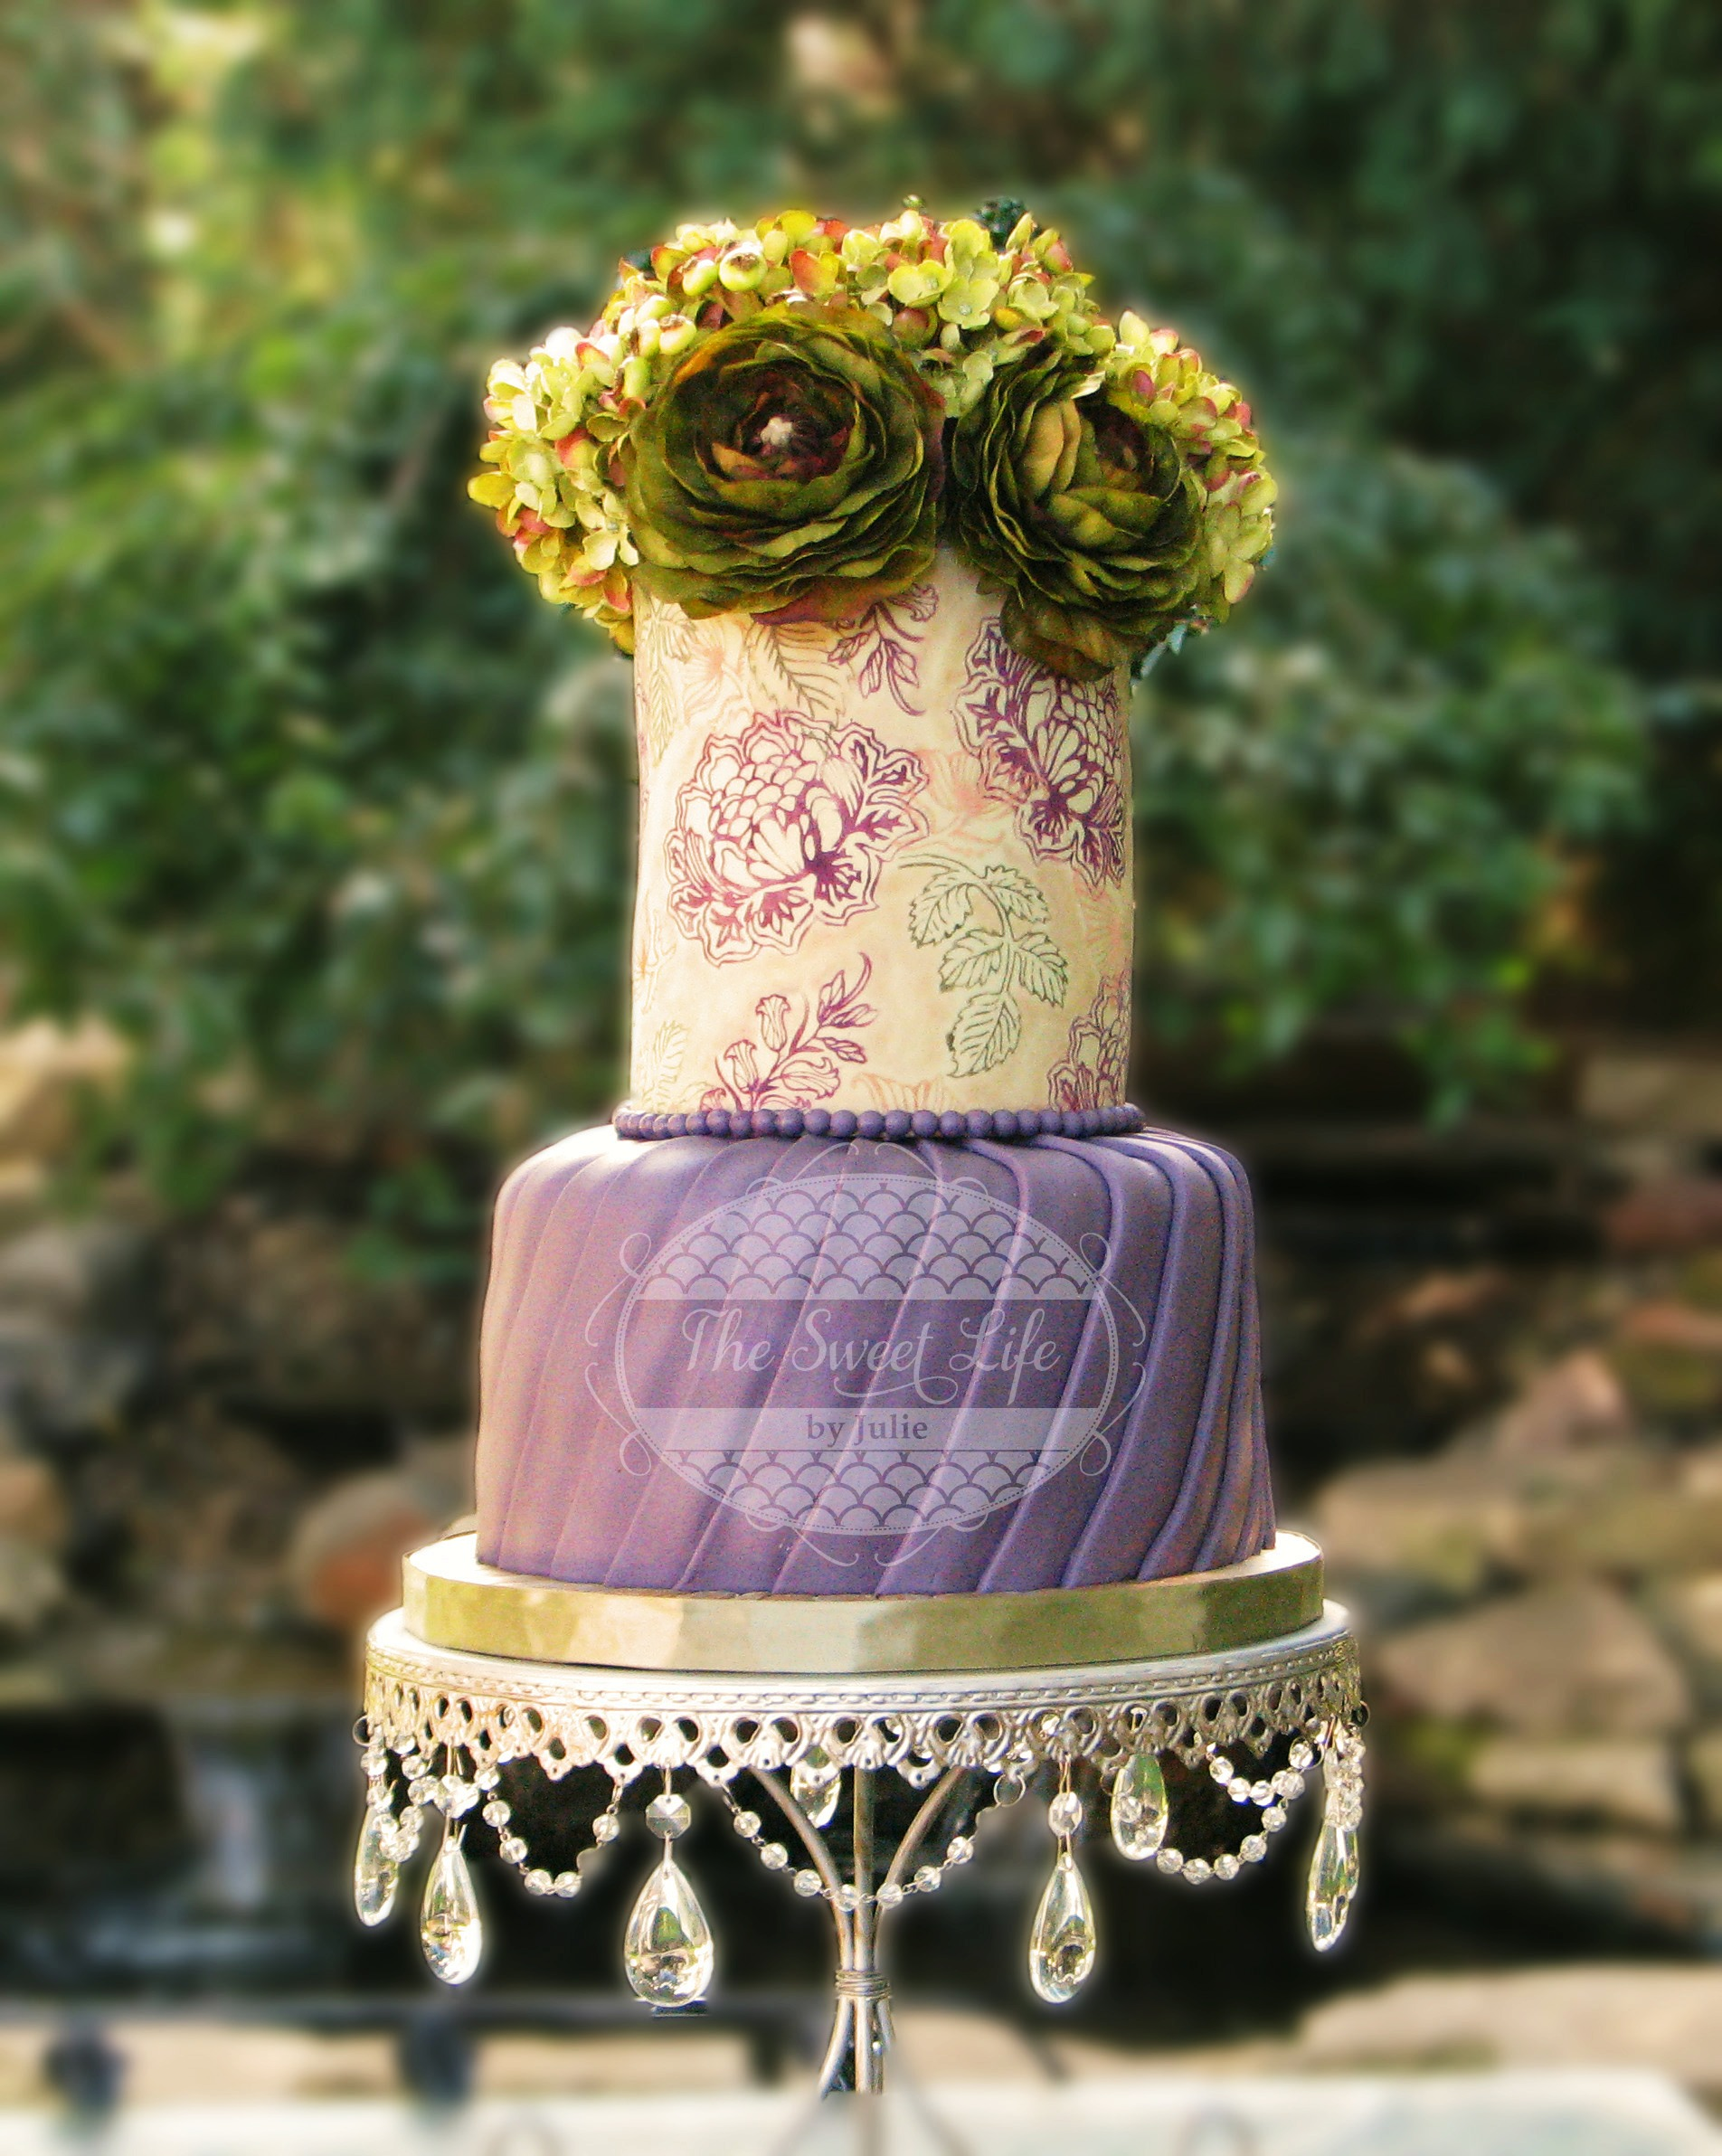 Purple cake with green sugar flower top